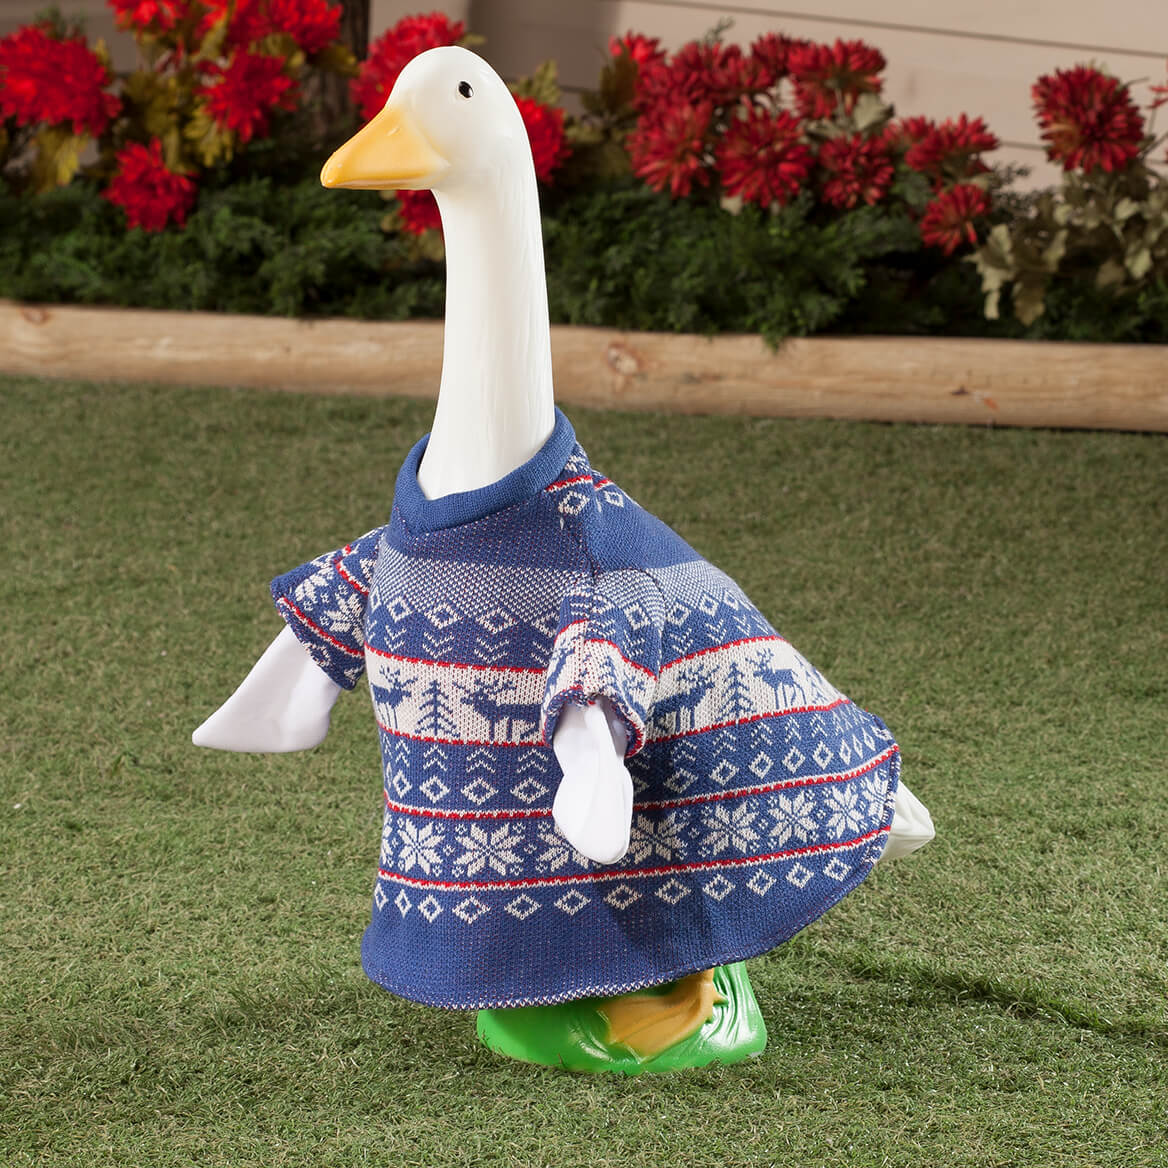 goose outfits miles kimball